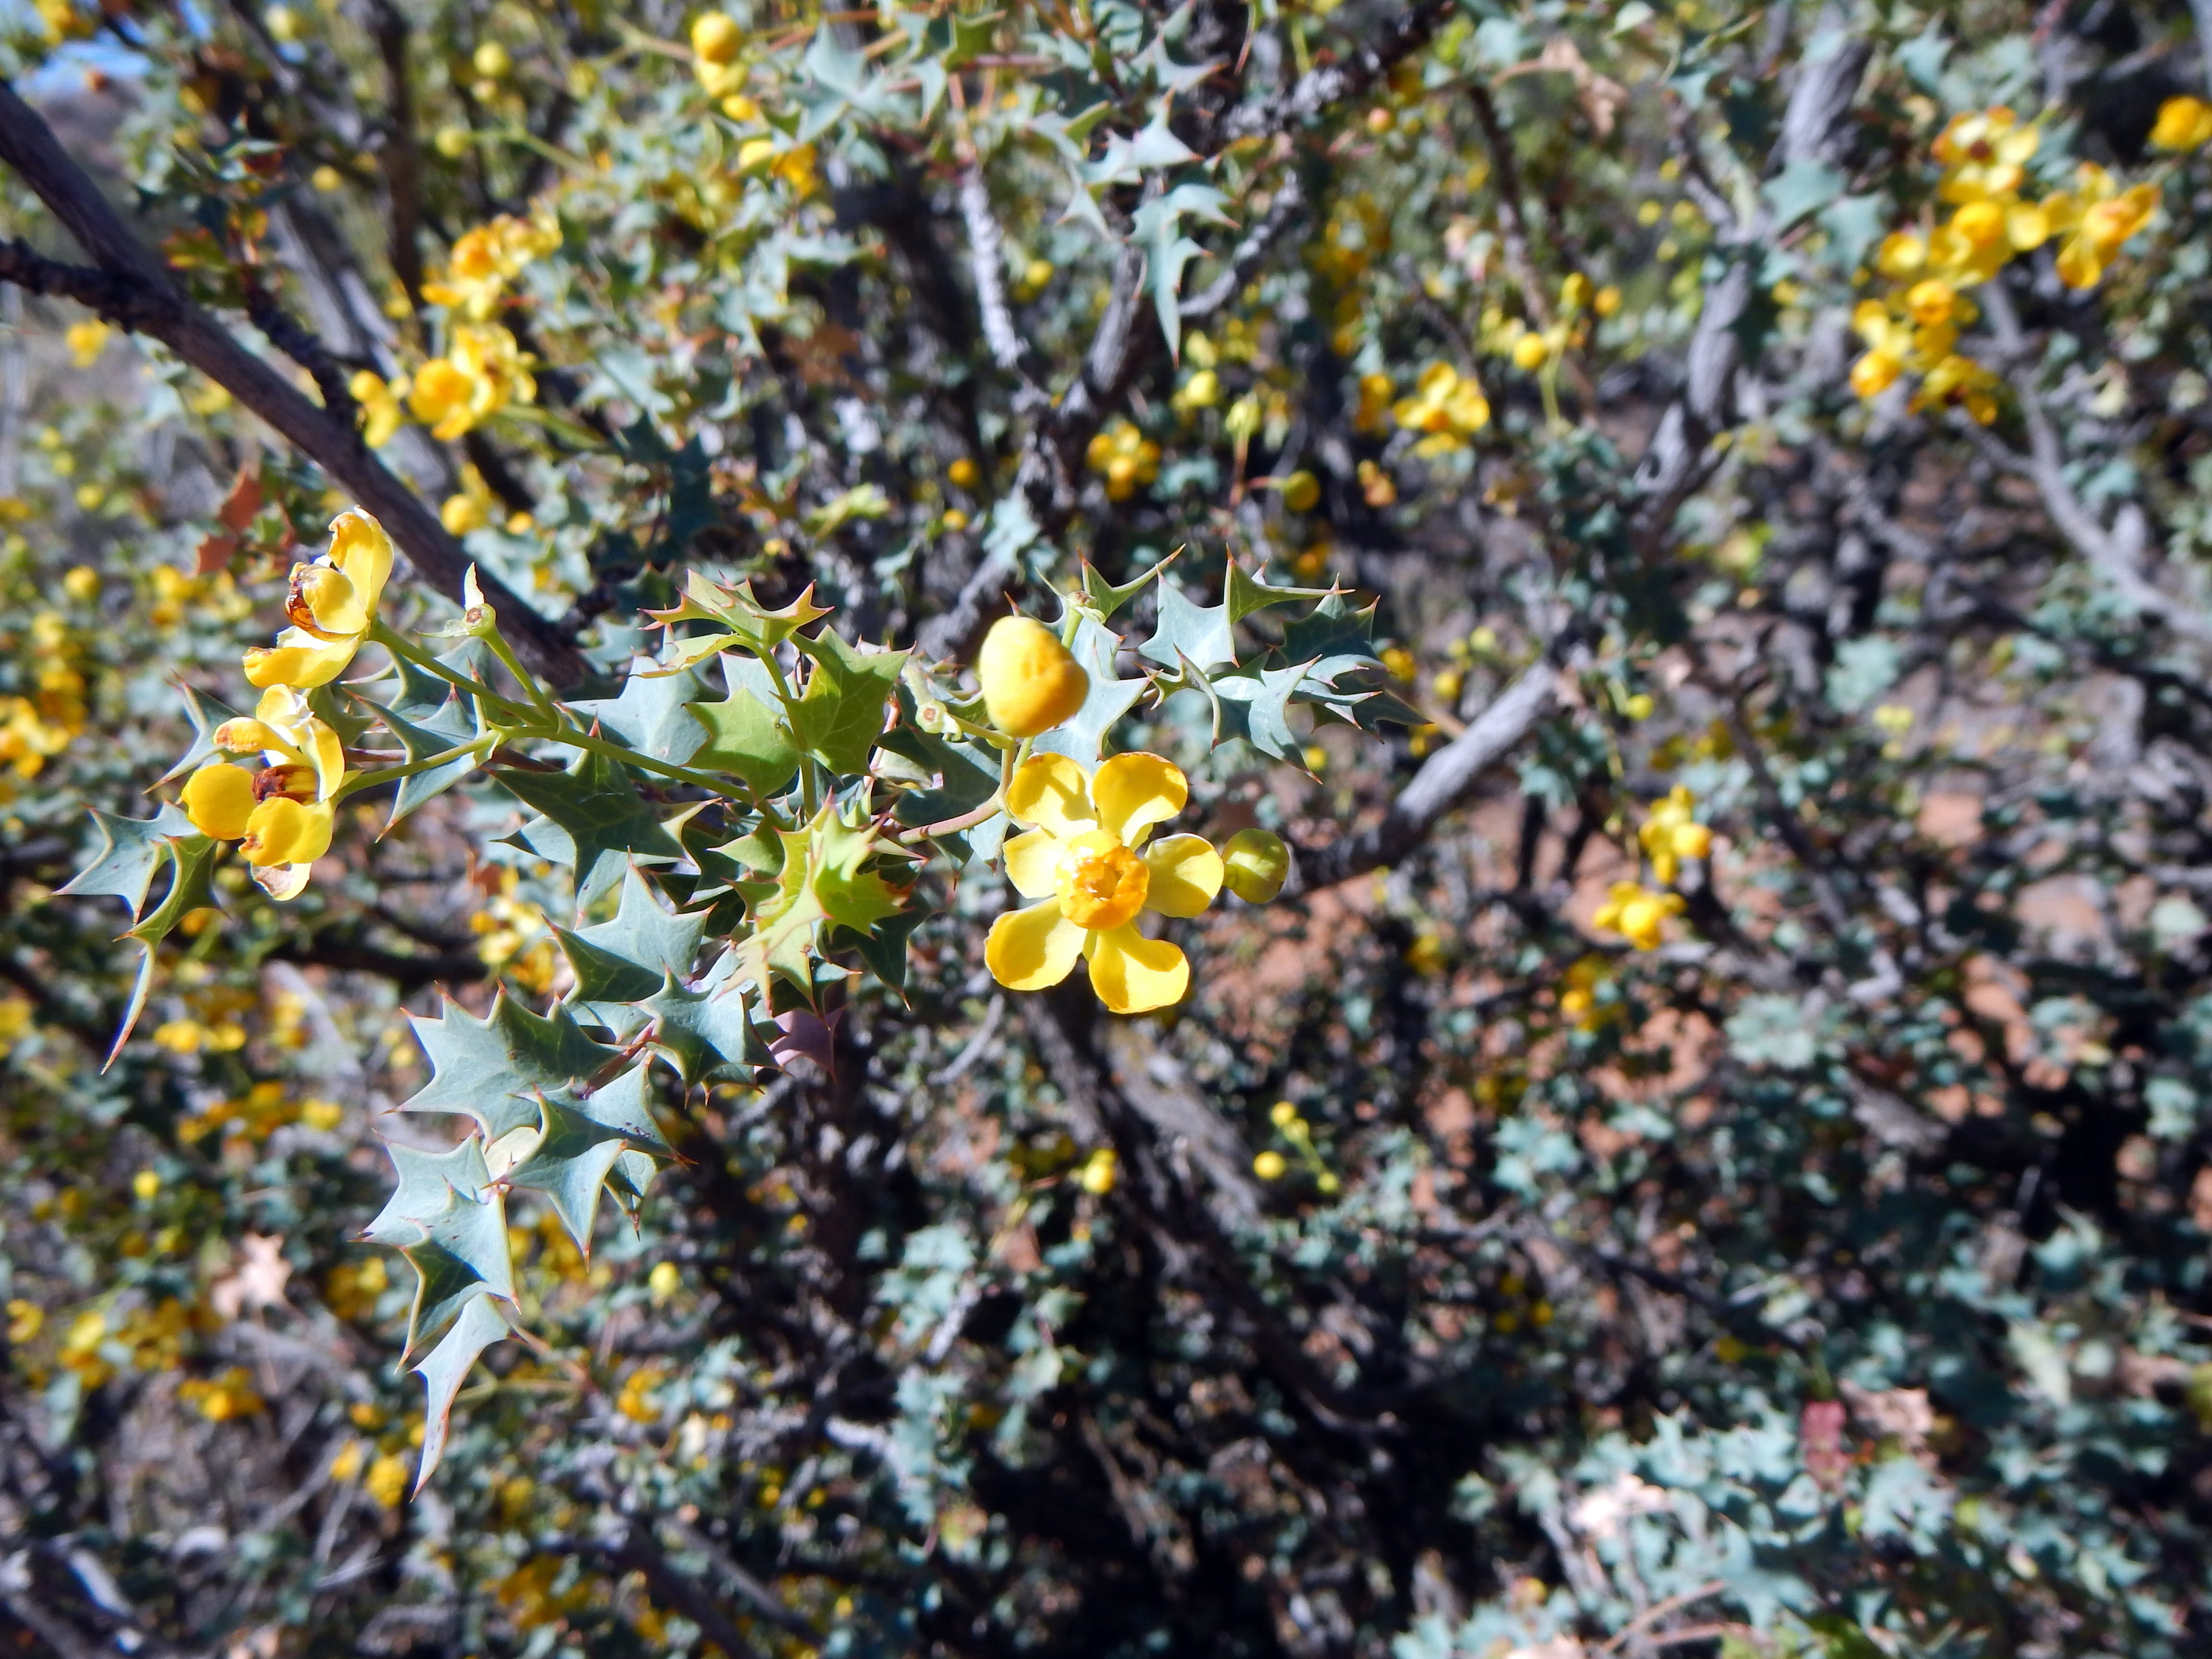 Photo: Pretty flowering shrubs with spiky leaves